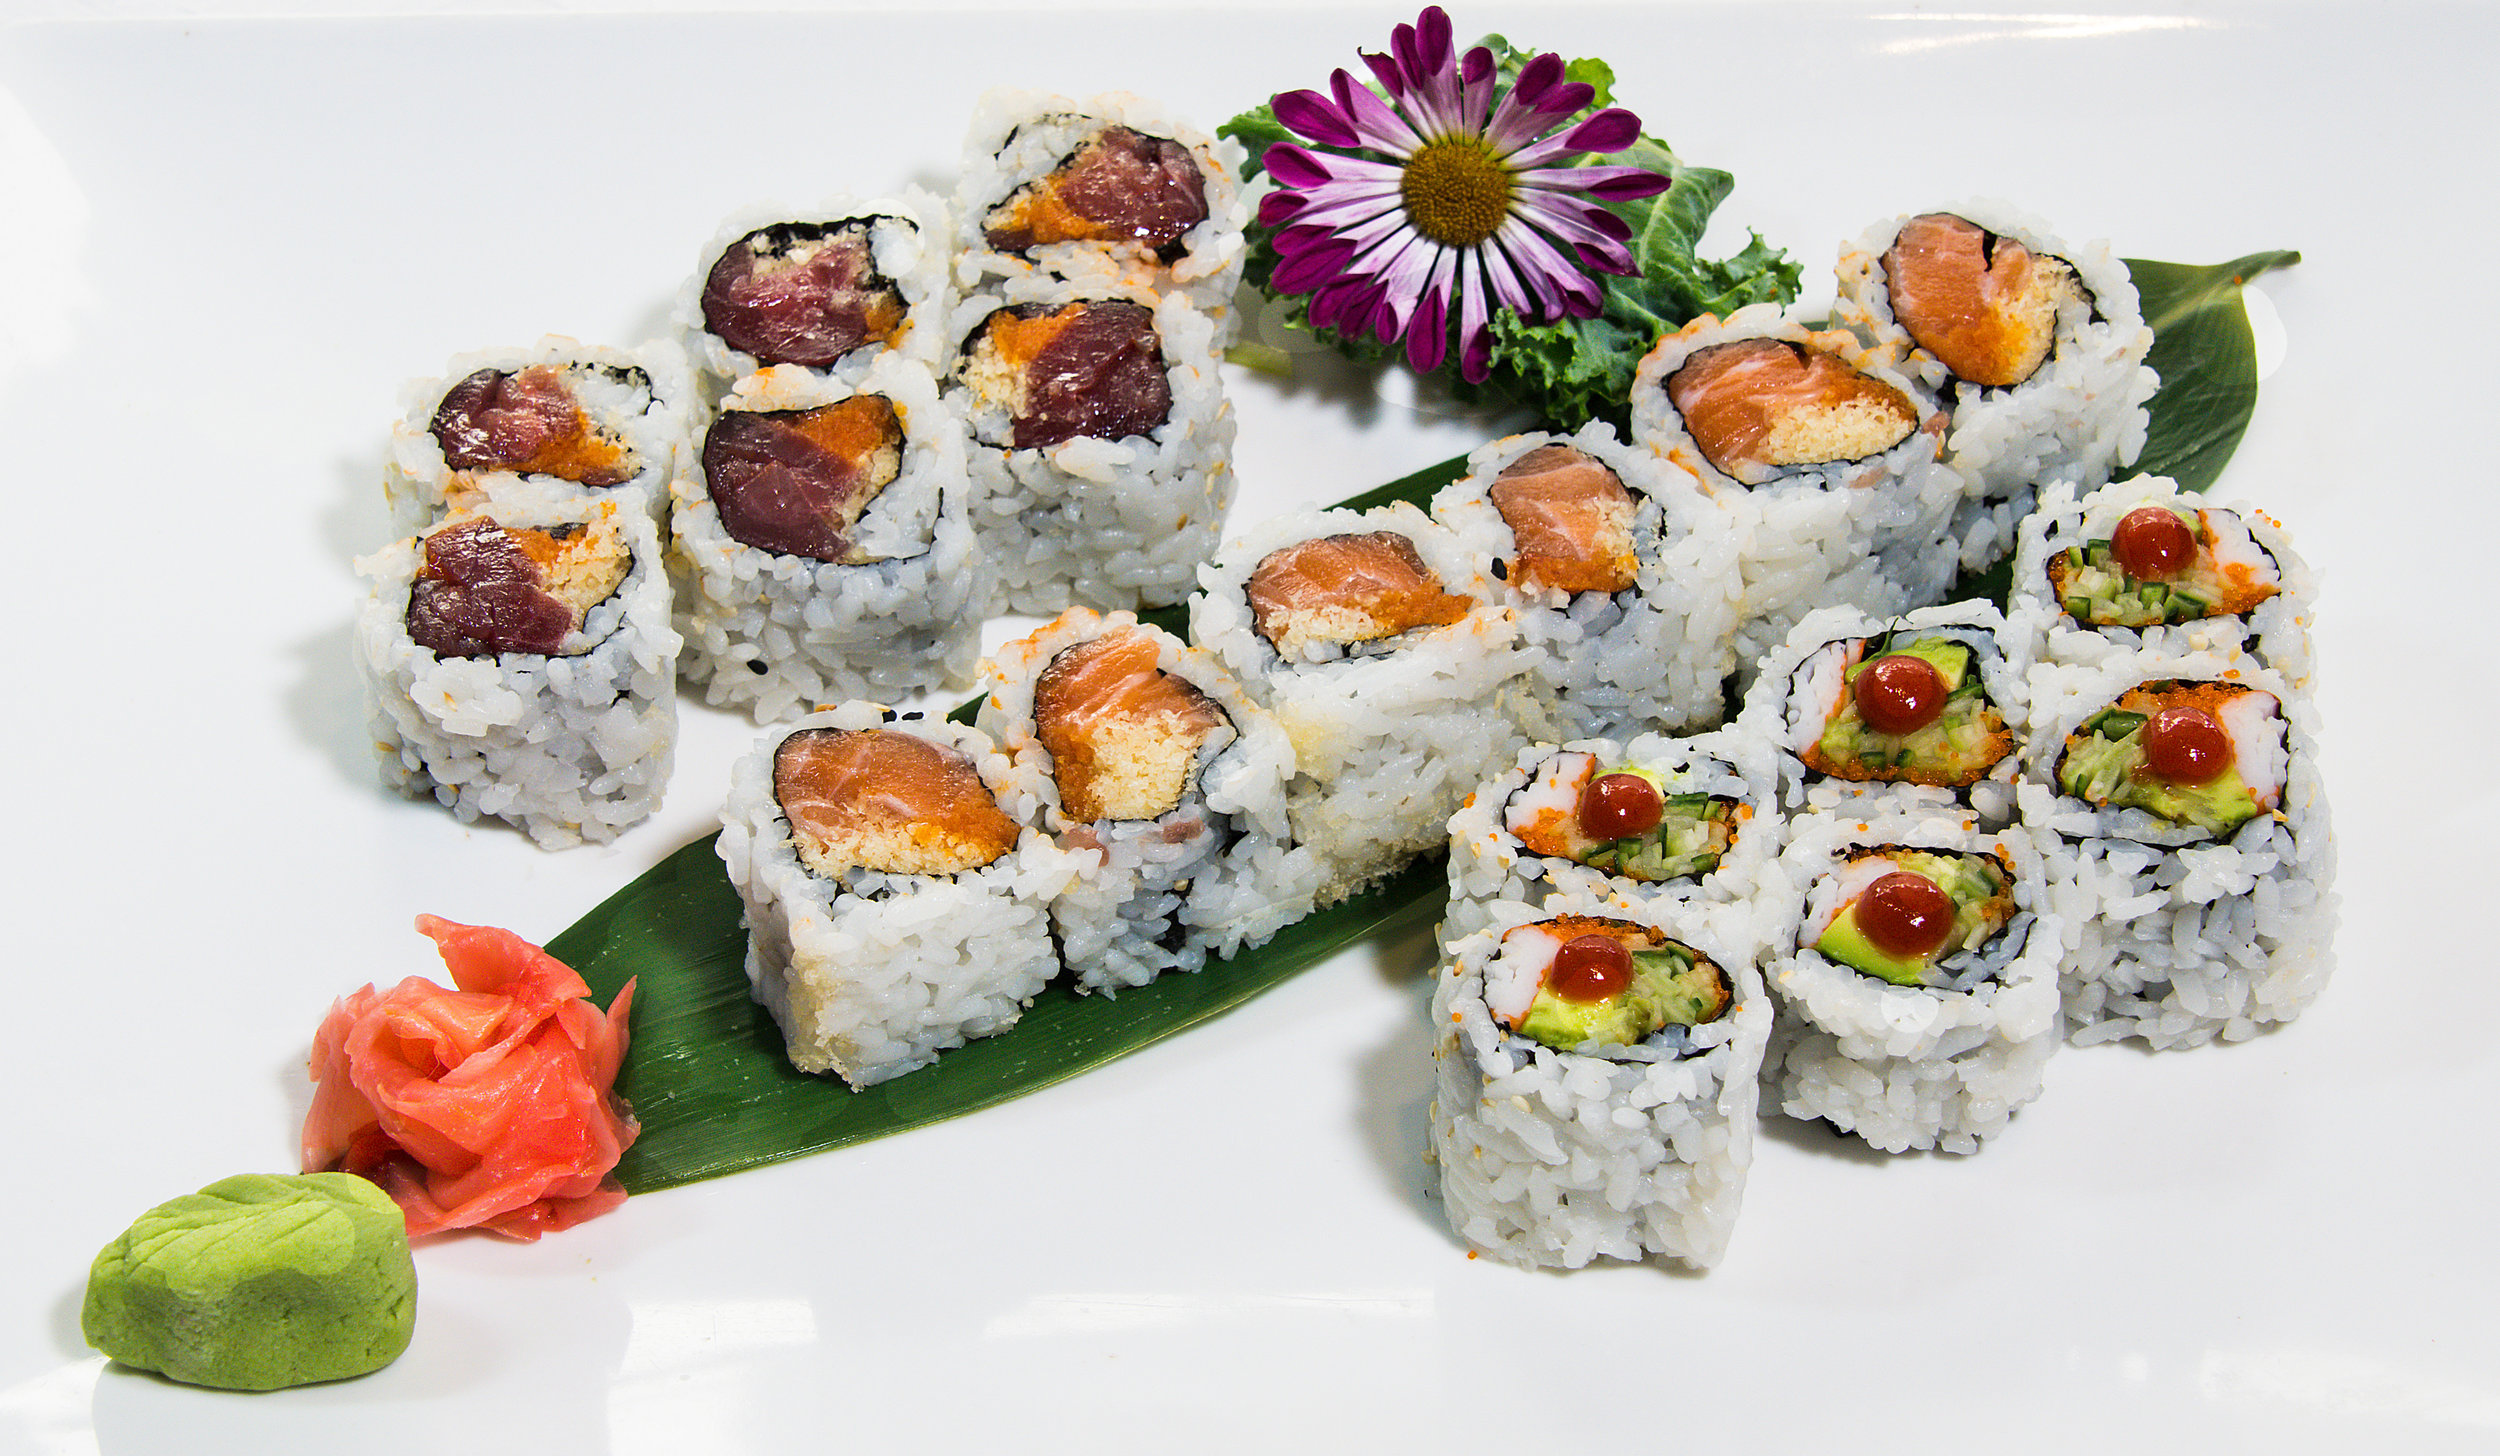 Spicy Roll Set (C3) $15.99